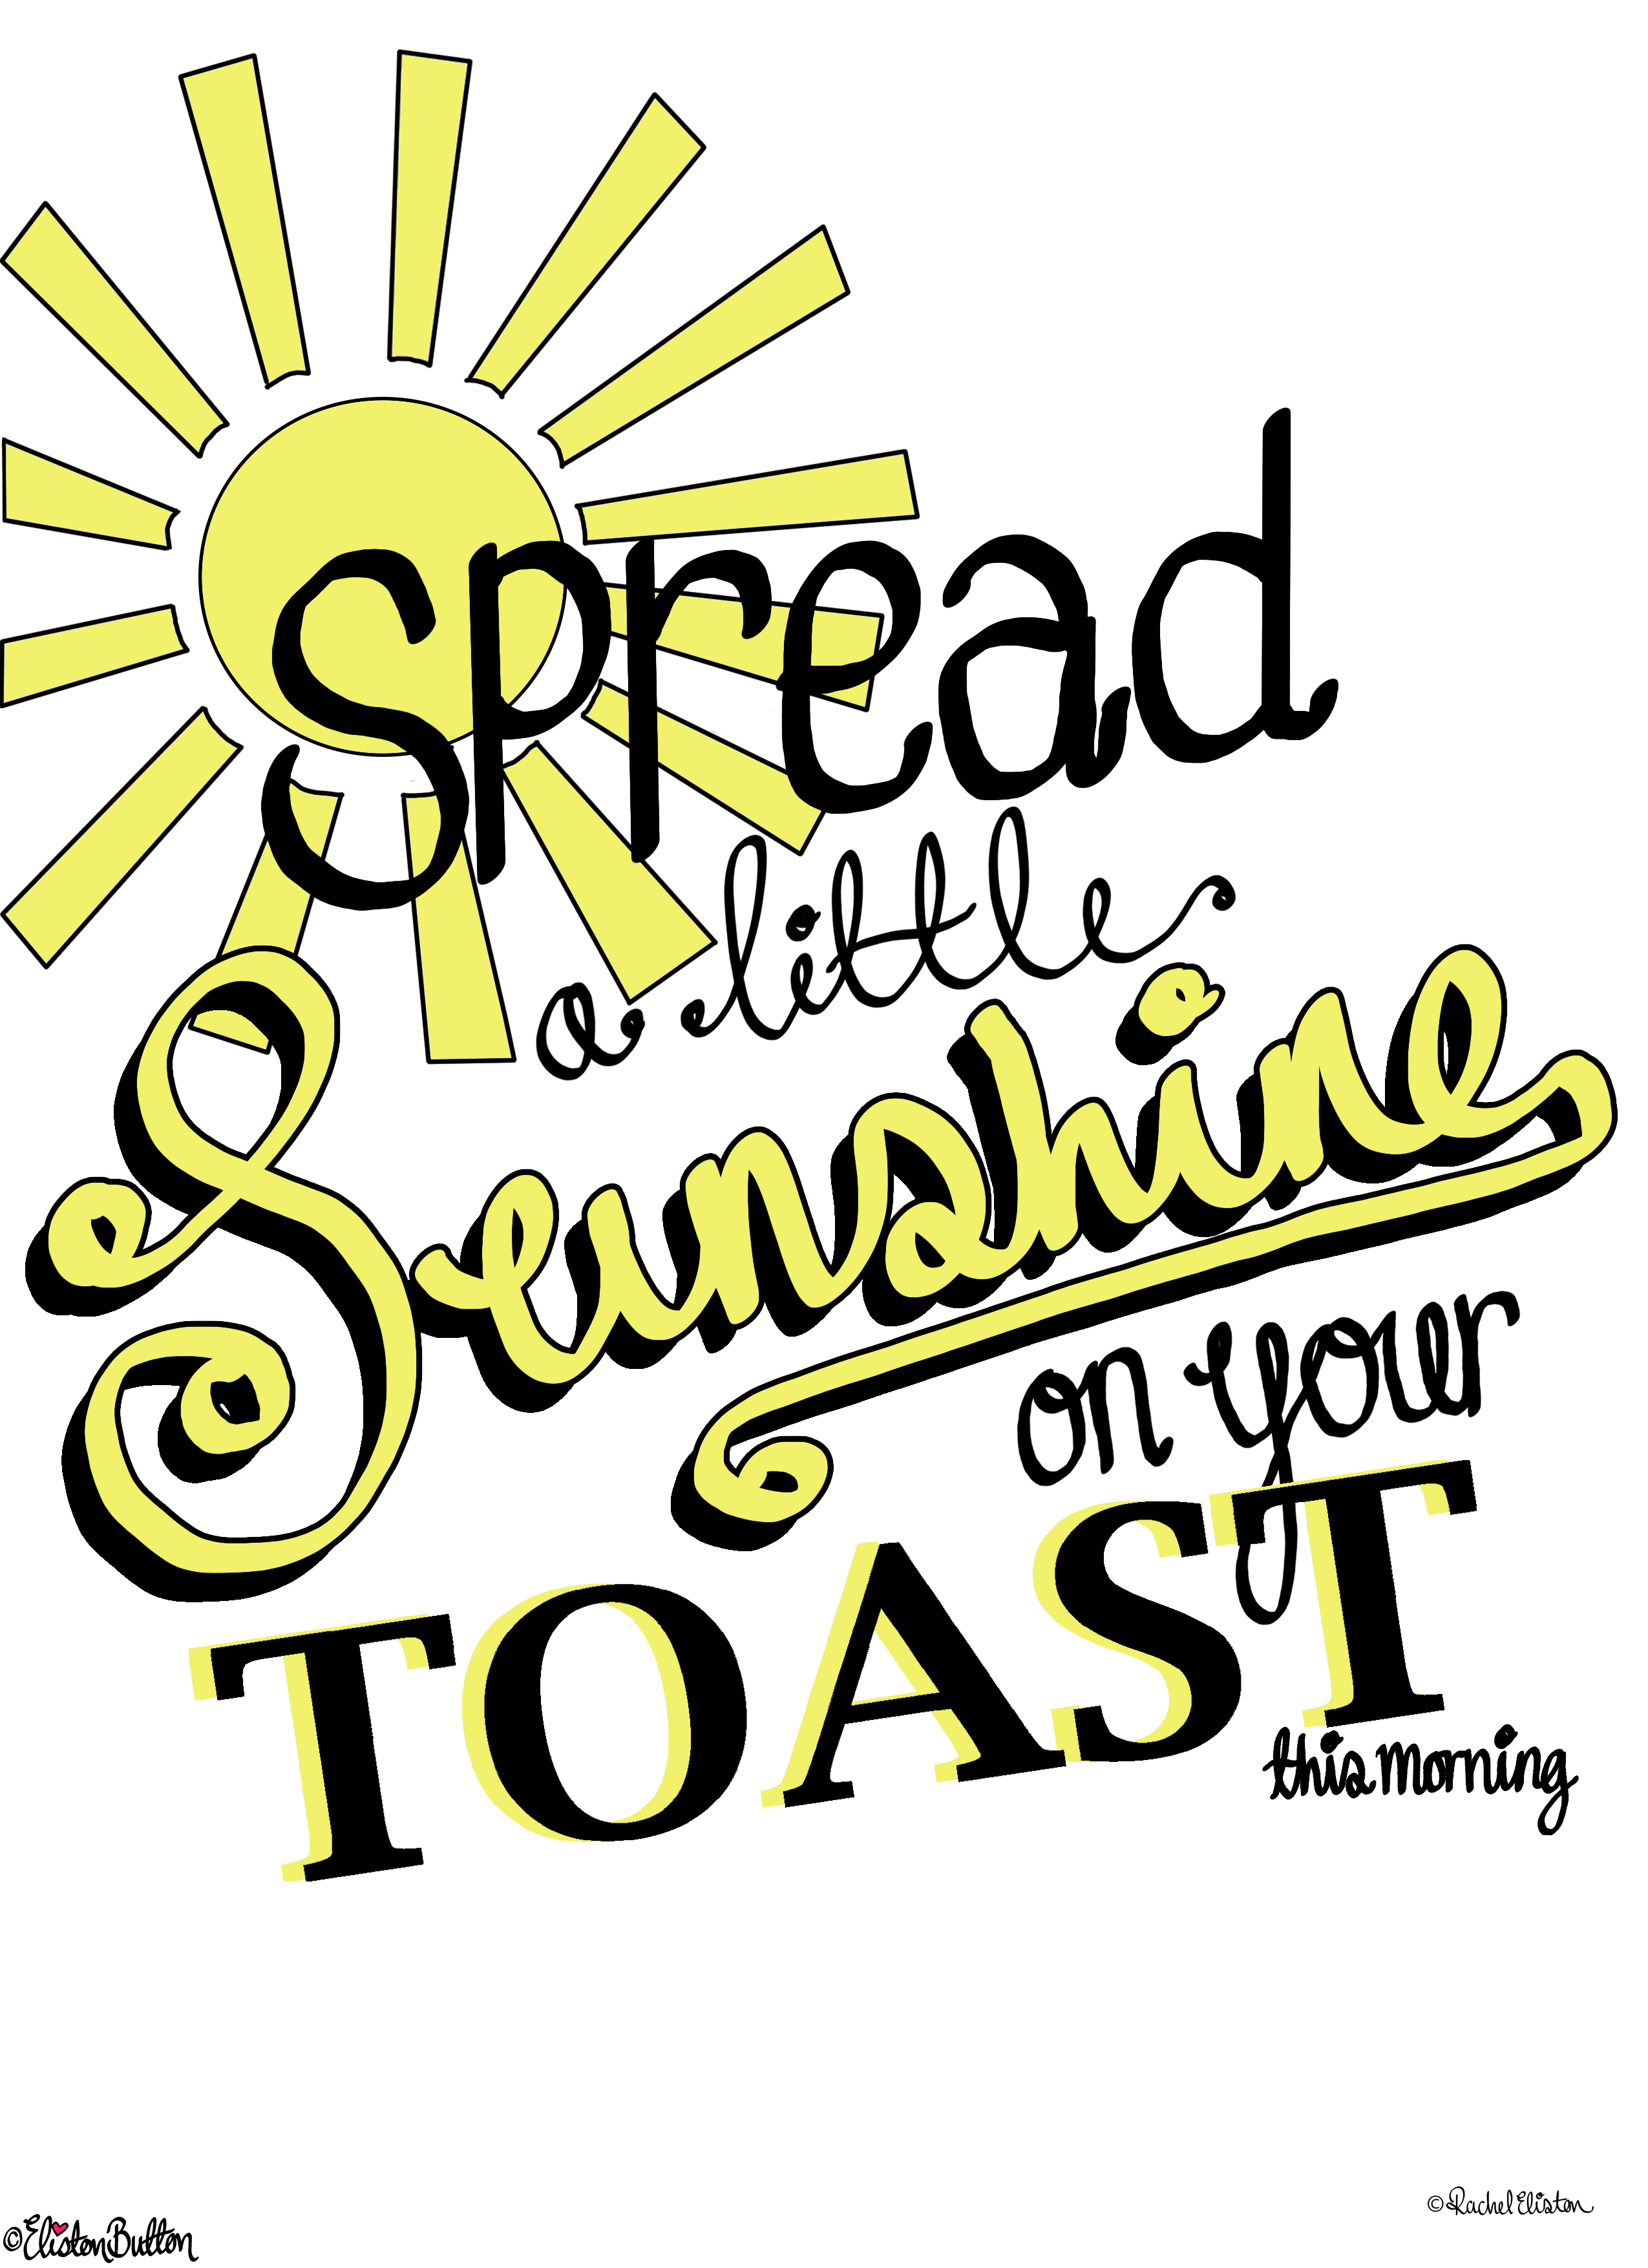 Spread a Little Sunshine Typographic Quote Illustration Wall Art Print with Written Copyright - Create 28 - No. 22 & 23 - Typographic Quote Illustrations at www.elistonbutton.com - Eliston Button - That Crafty Kid – Art, Design, Craft & Adventure.